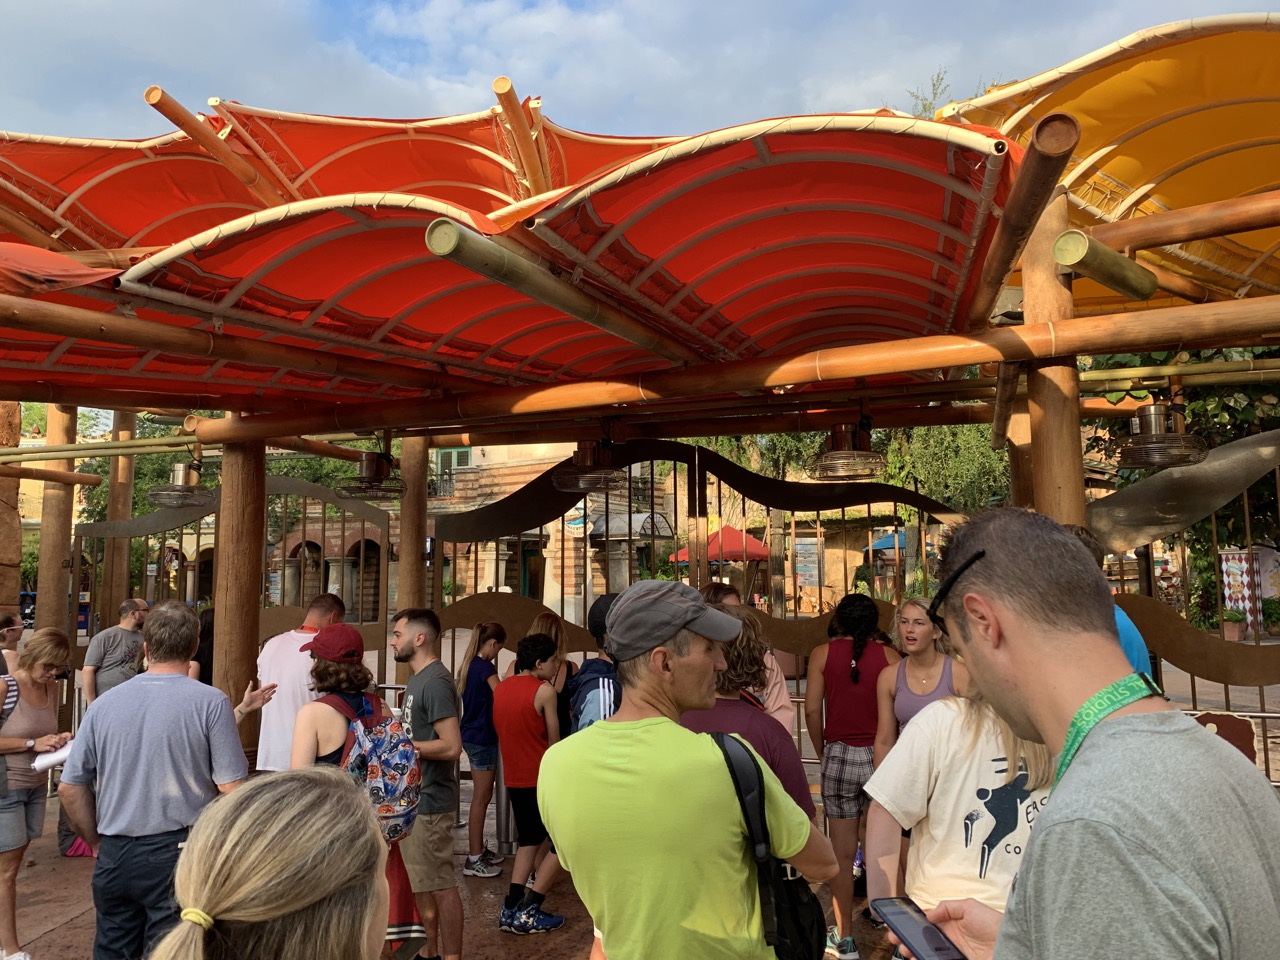 universal islands of adventure rope drop morning strategy 07 crowd.jpeg